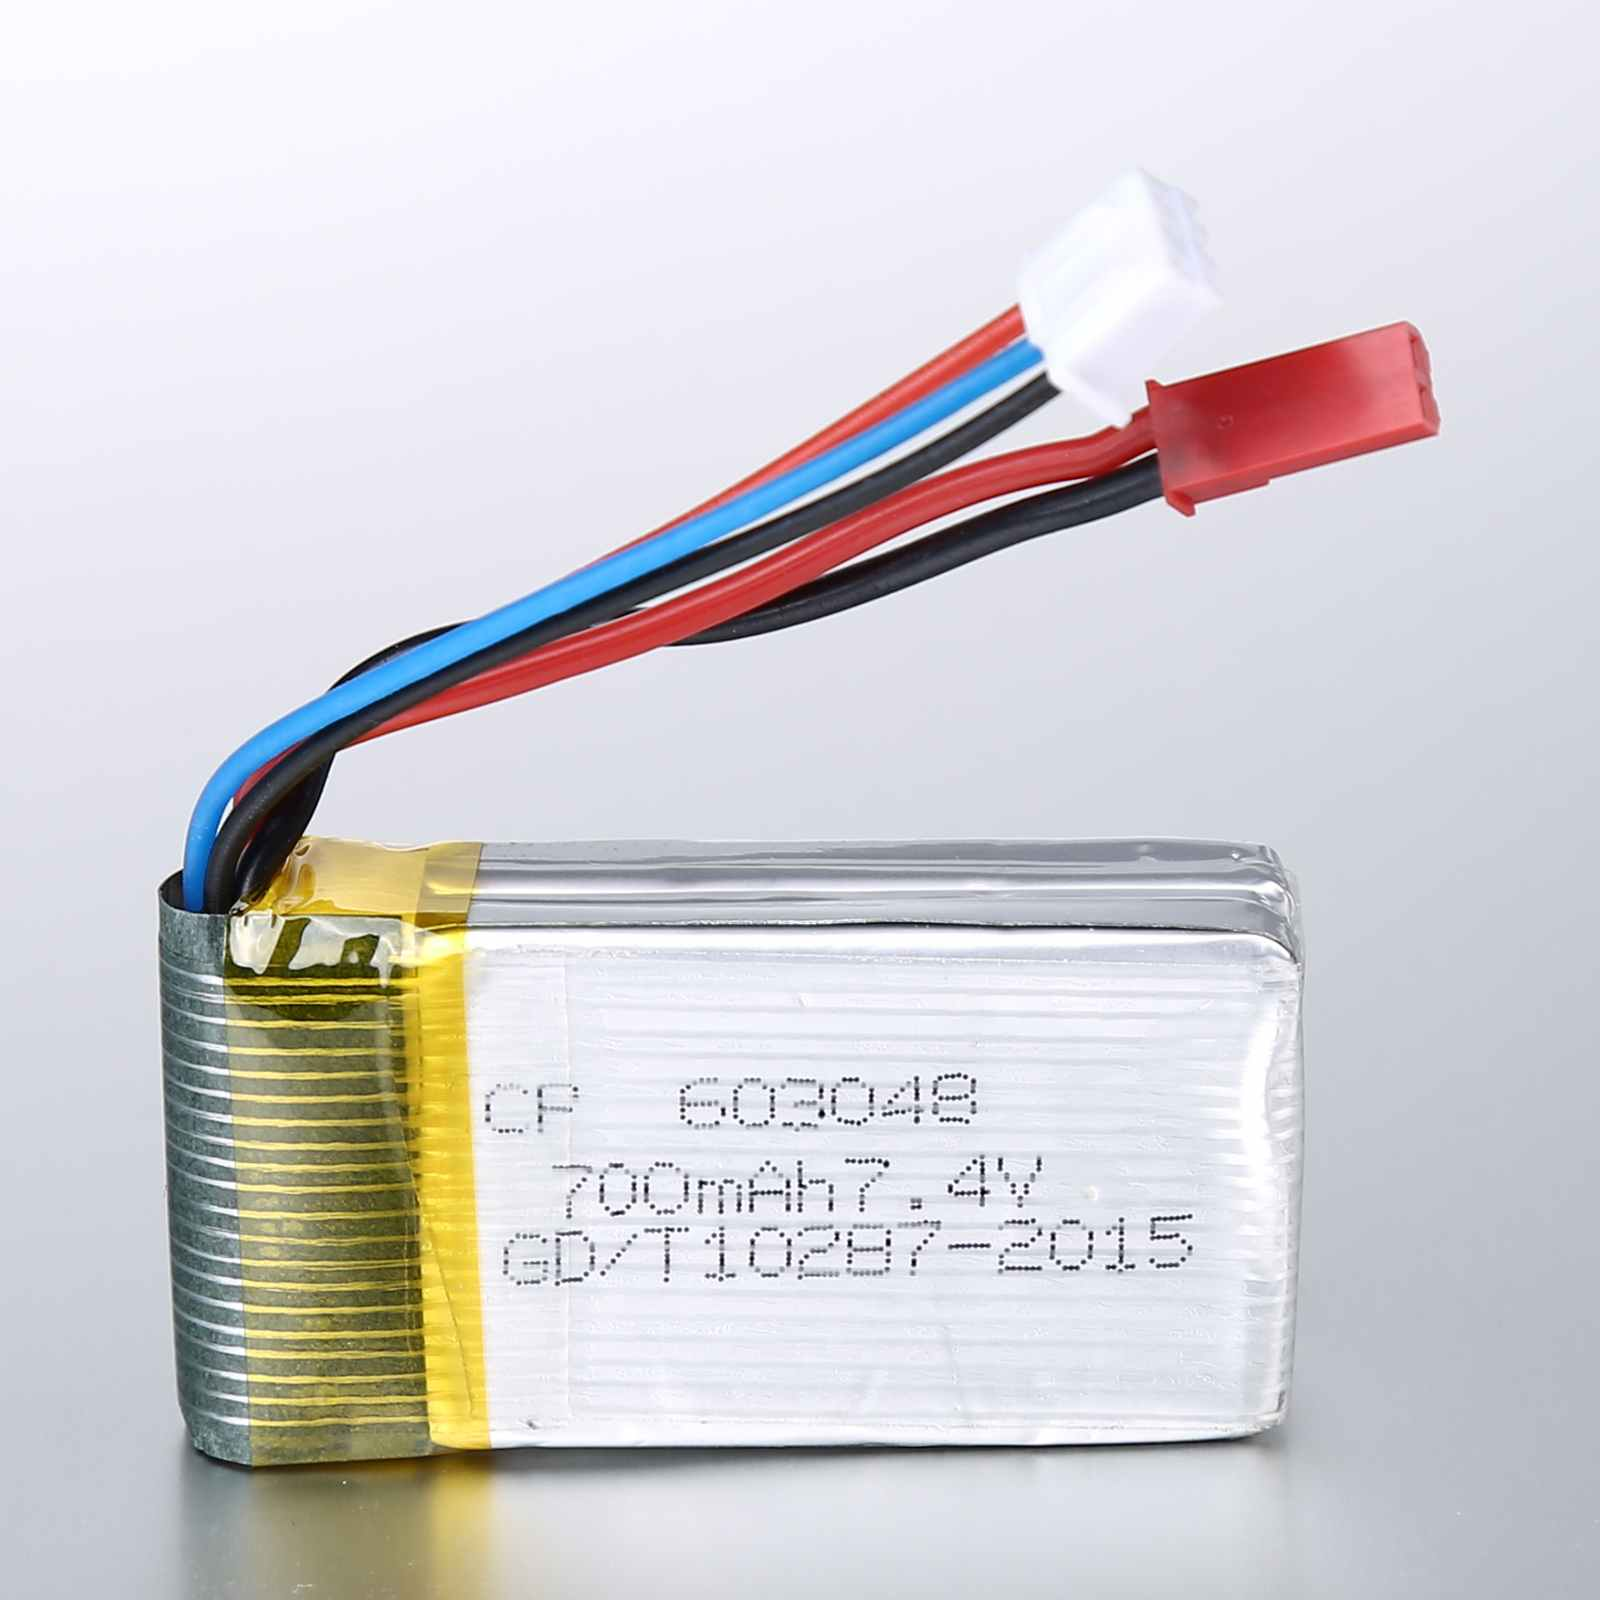 High Quality Lipo Battery Replacement 7.4V 700mAh Lipo Battery Spare Parts for MJX X600 RC Quadcopter Helicopter lipo battery 7 4v 2500mah for mjx f45 f645 t23 rc parts helicopter battery can add 3in1 charger f45 22 extra spare toys